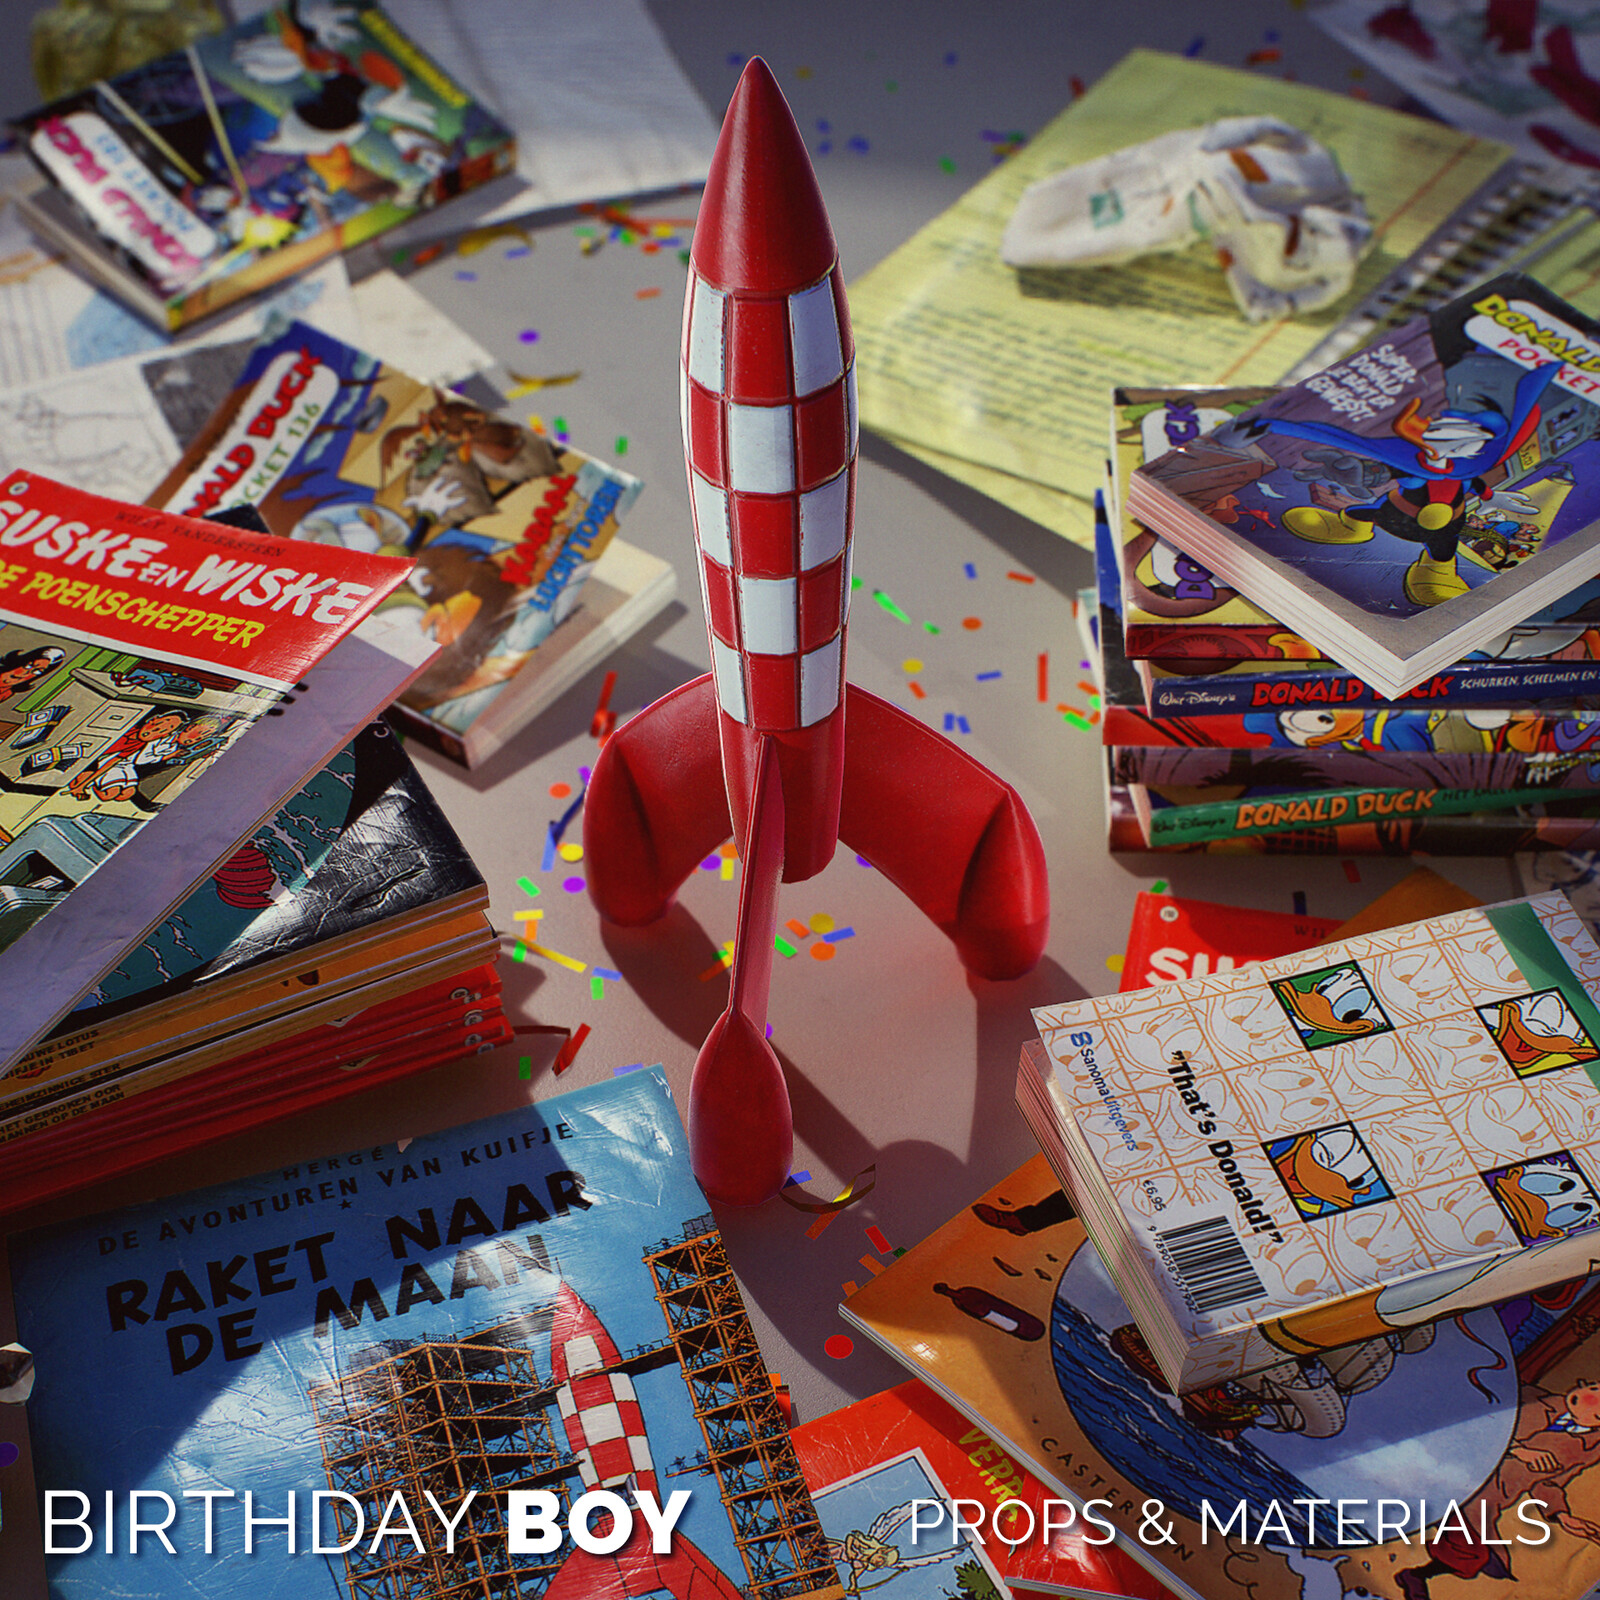 Birthday Boy - Props and materials